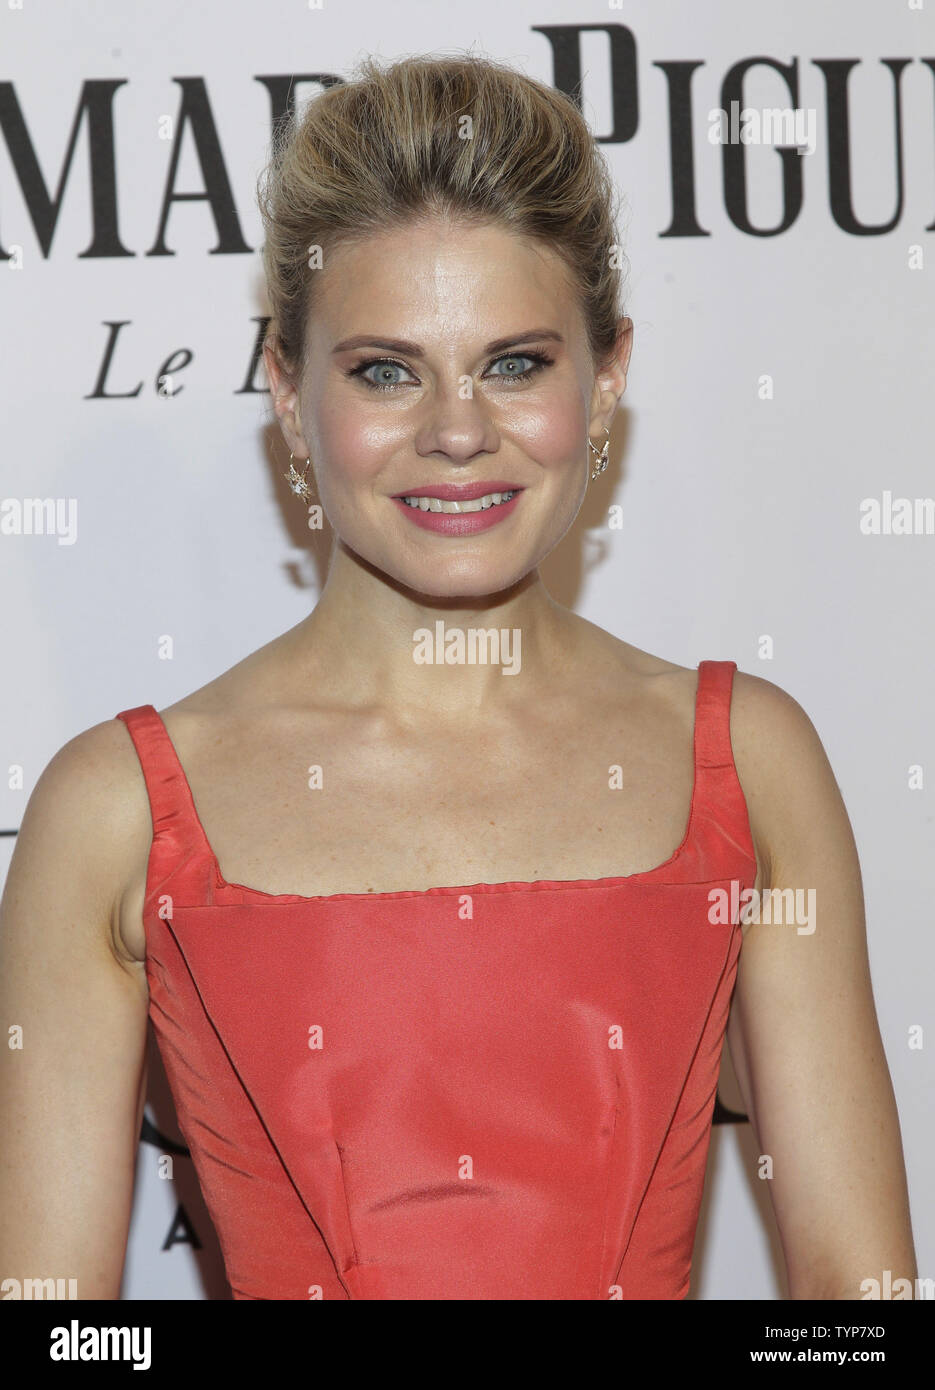 Celia Keenan-Bolger arrives on the red carpet at the 68th Tony Awards at Radio City Music Hall in New York City on June 8, 2014. The annual awards, which are presented by the American Theatre Wing, recognizes the achievements of Broadway theater.     UPI/John Angelillo. - Stock Image